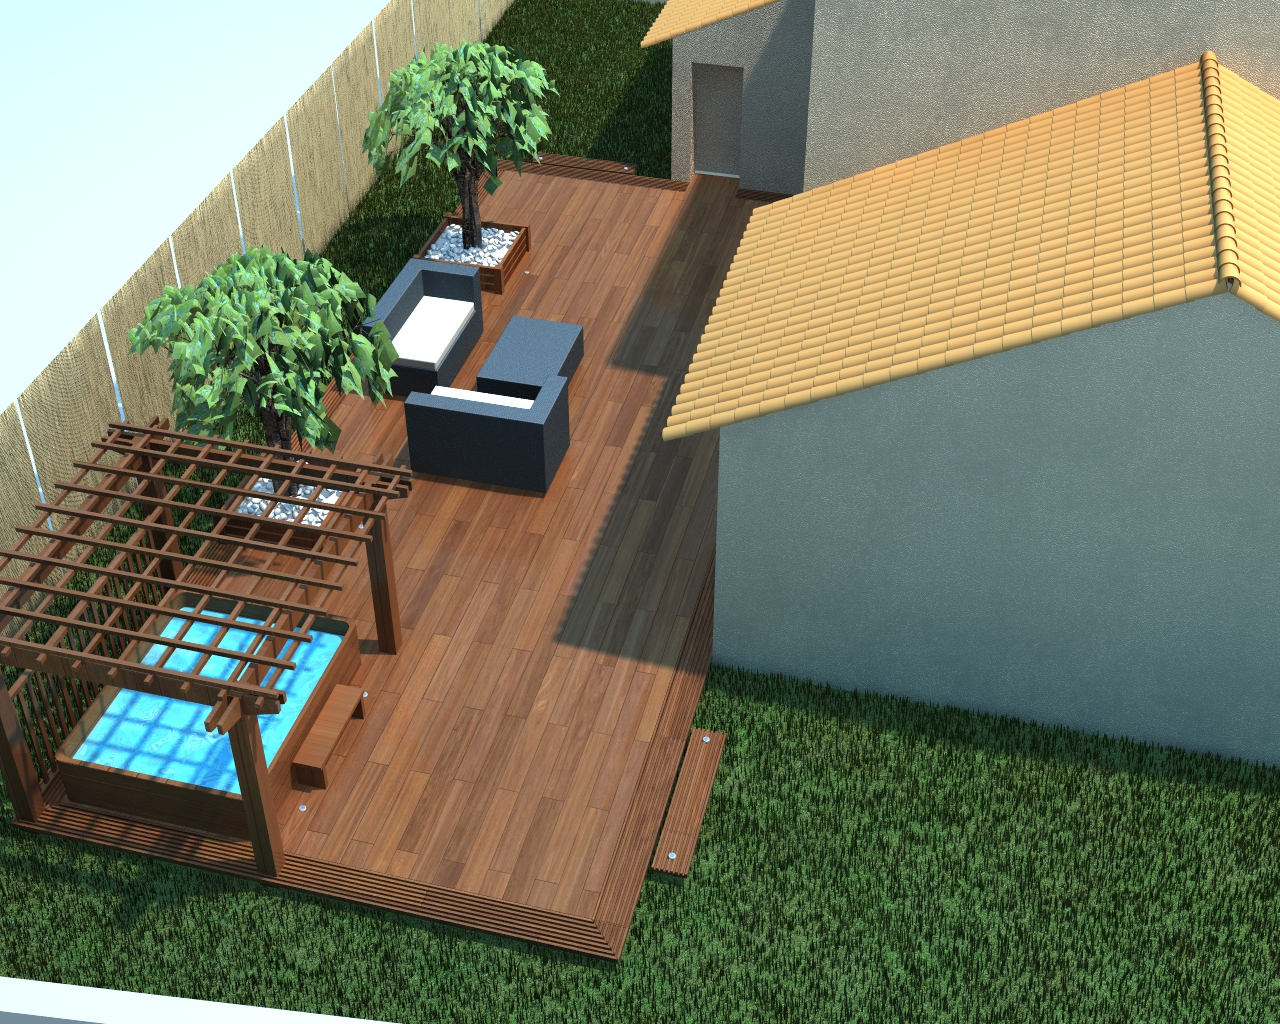 Conception terrasse et am nagement spa et salon de jardin for Amenagement terrasse et jardin photo